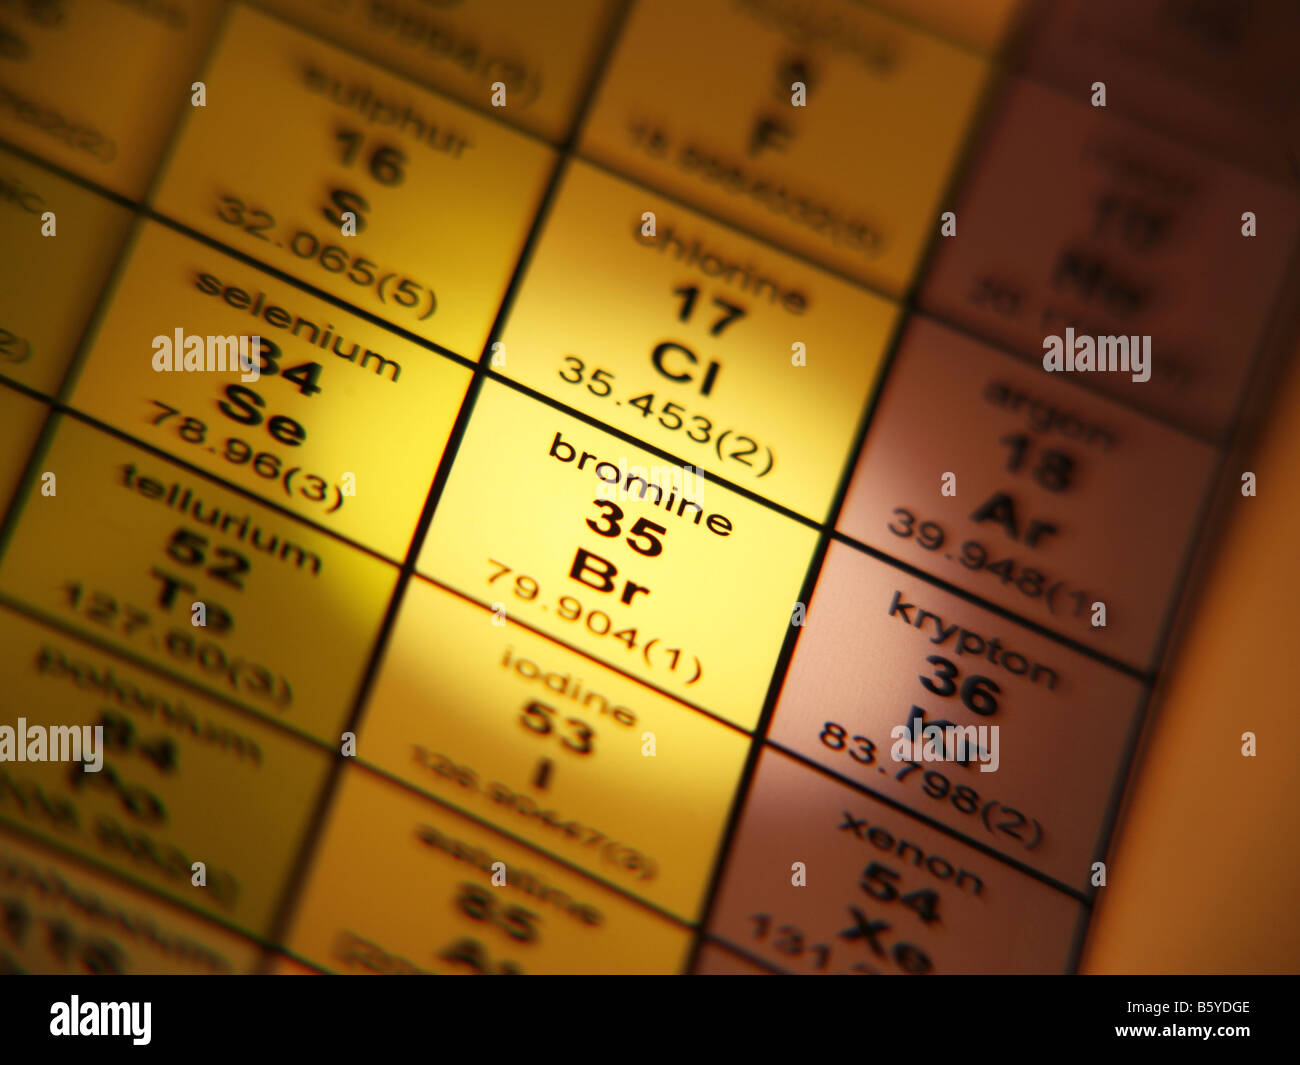 Periodic table of elements bromine halogen stock photo 20887006 alamy periodic table of elements bromine halogen urtaz Choice Image